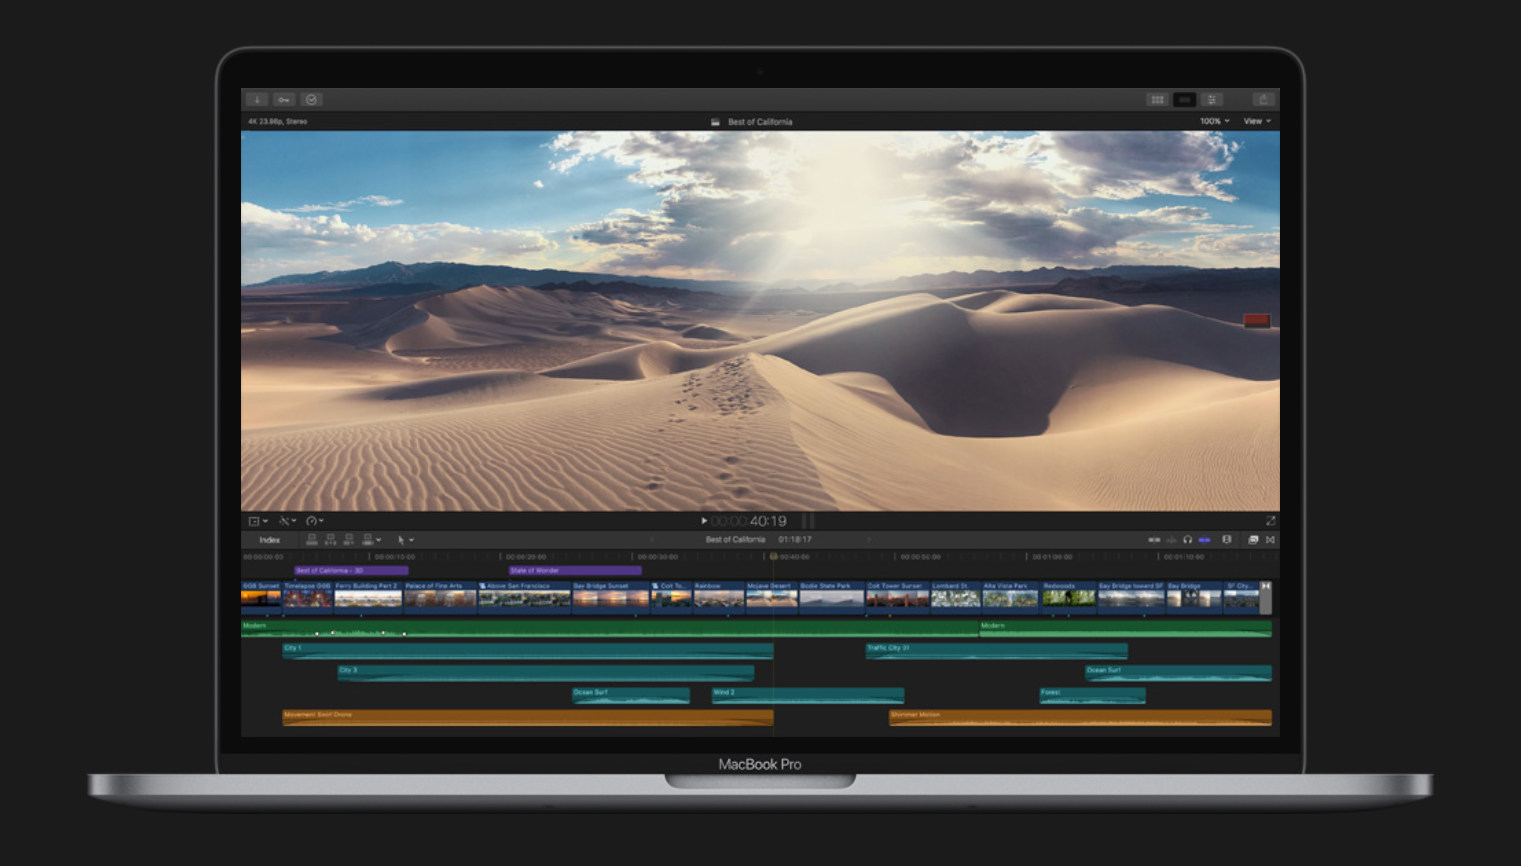 Apple Final Cut Pro X 10 4 6 update brings detect and